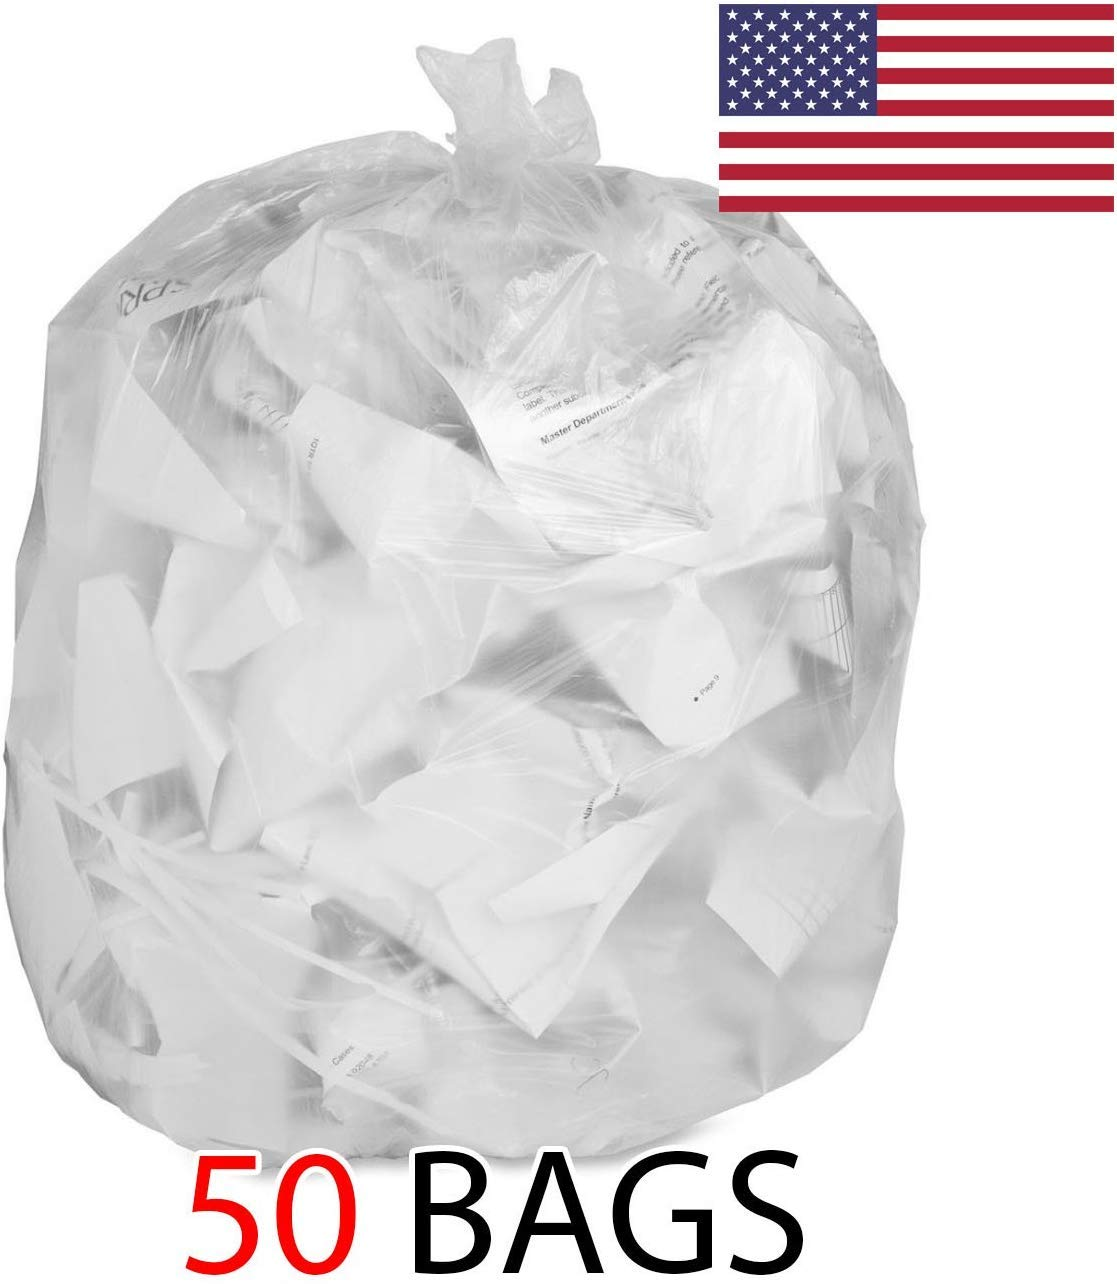 Strong Clear Trash Bags, Transparent See Through Garbage Bags (50, 55 Gallon) by Ox Plastics